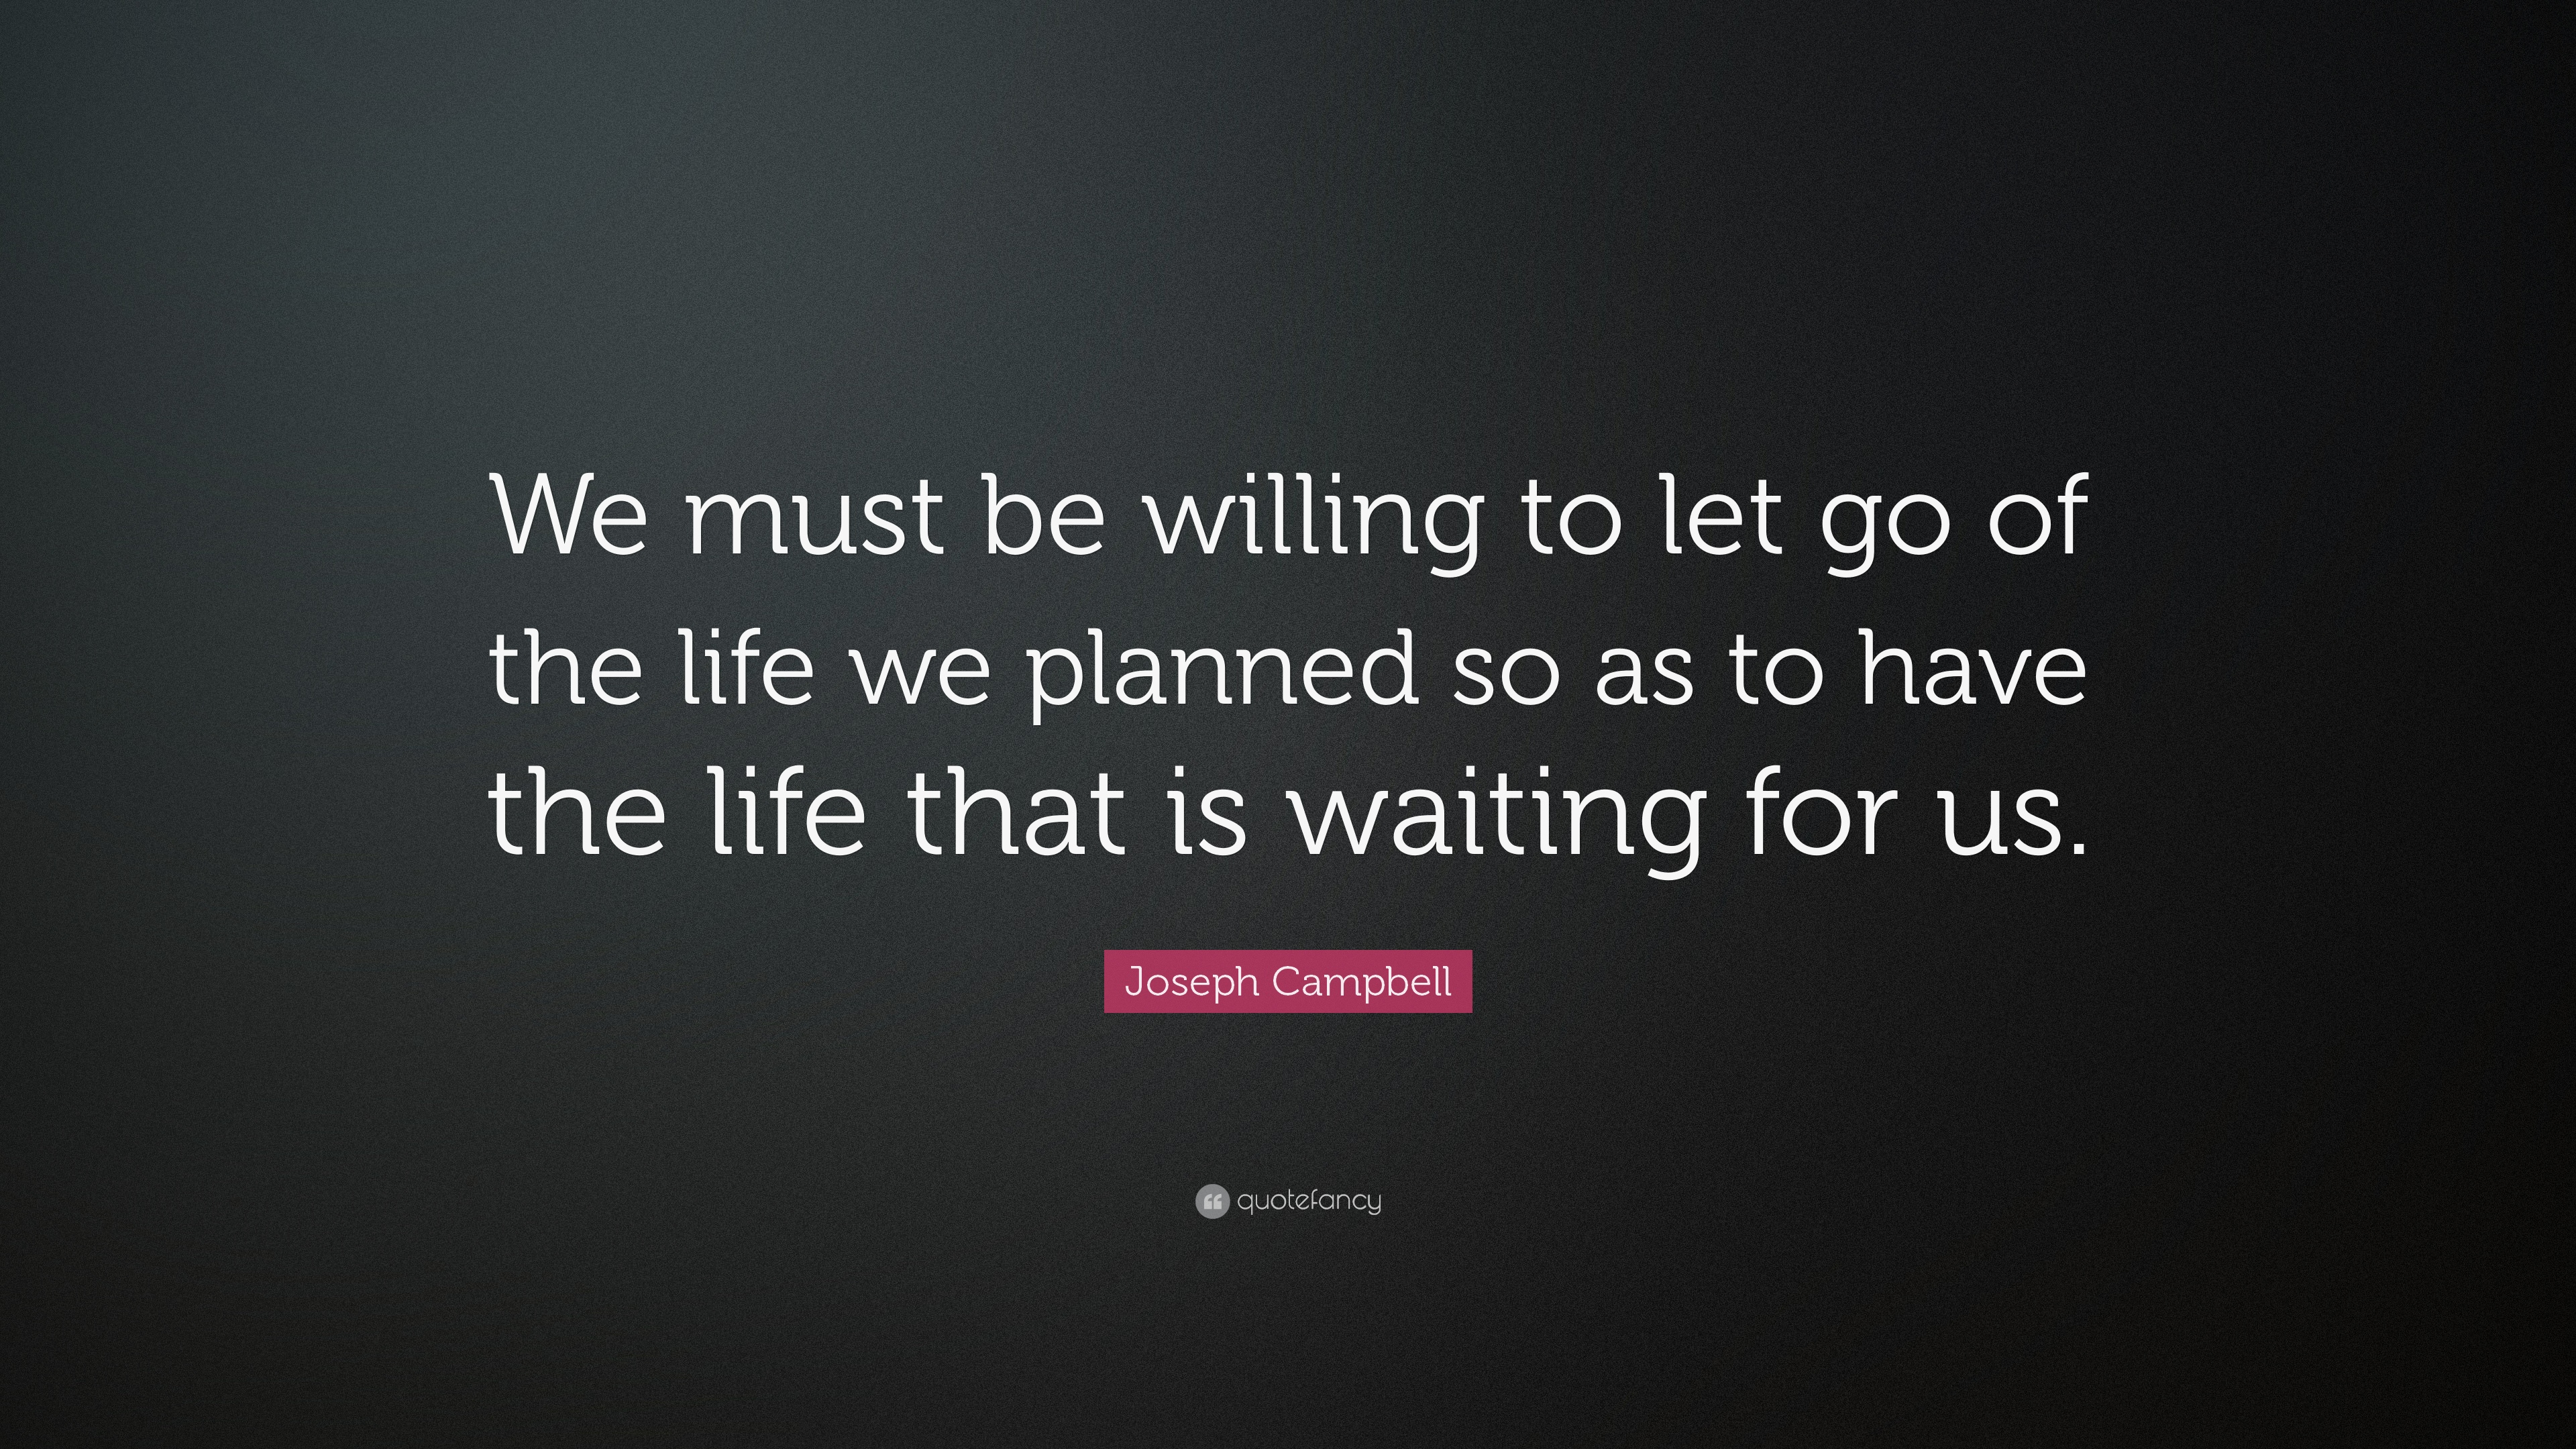 Socrates Wallpaper Quotes Joseph Campbell Quote We Must Be Willing To Let Go Of